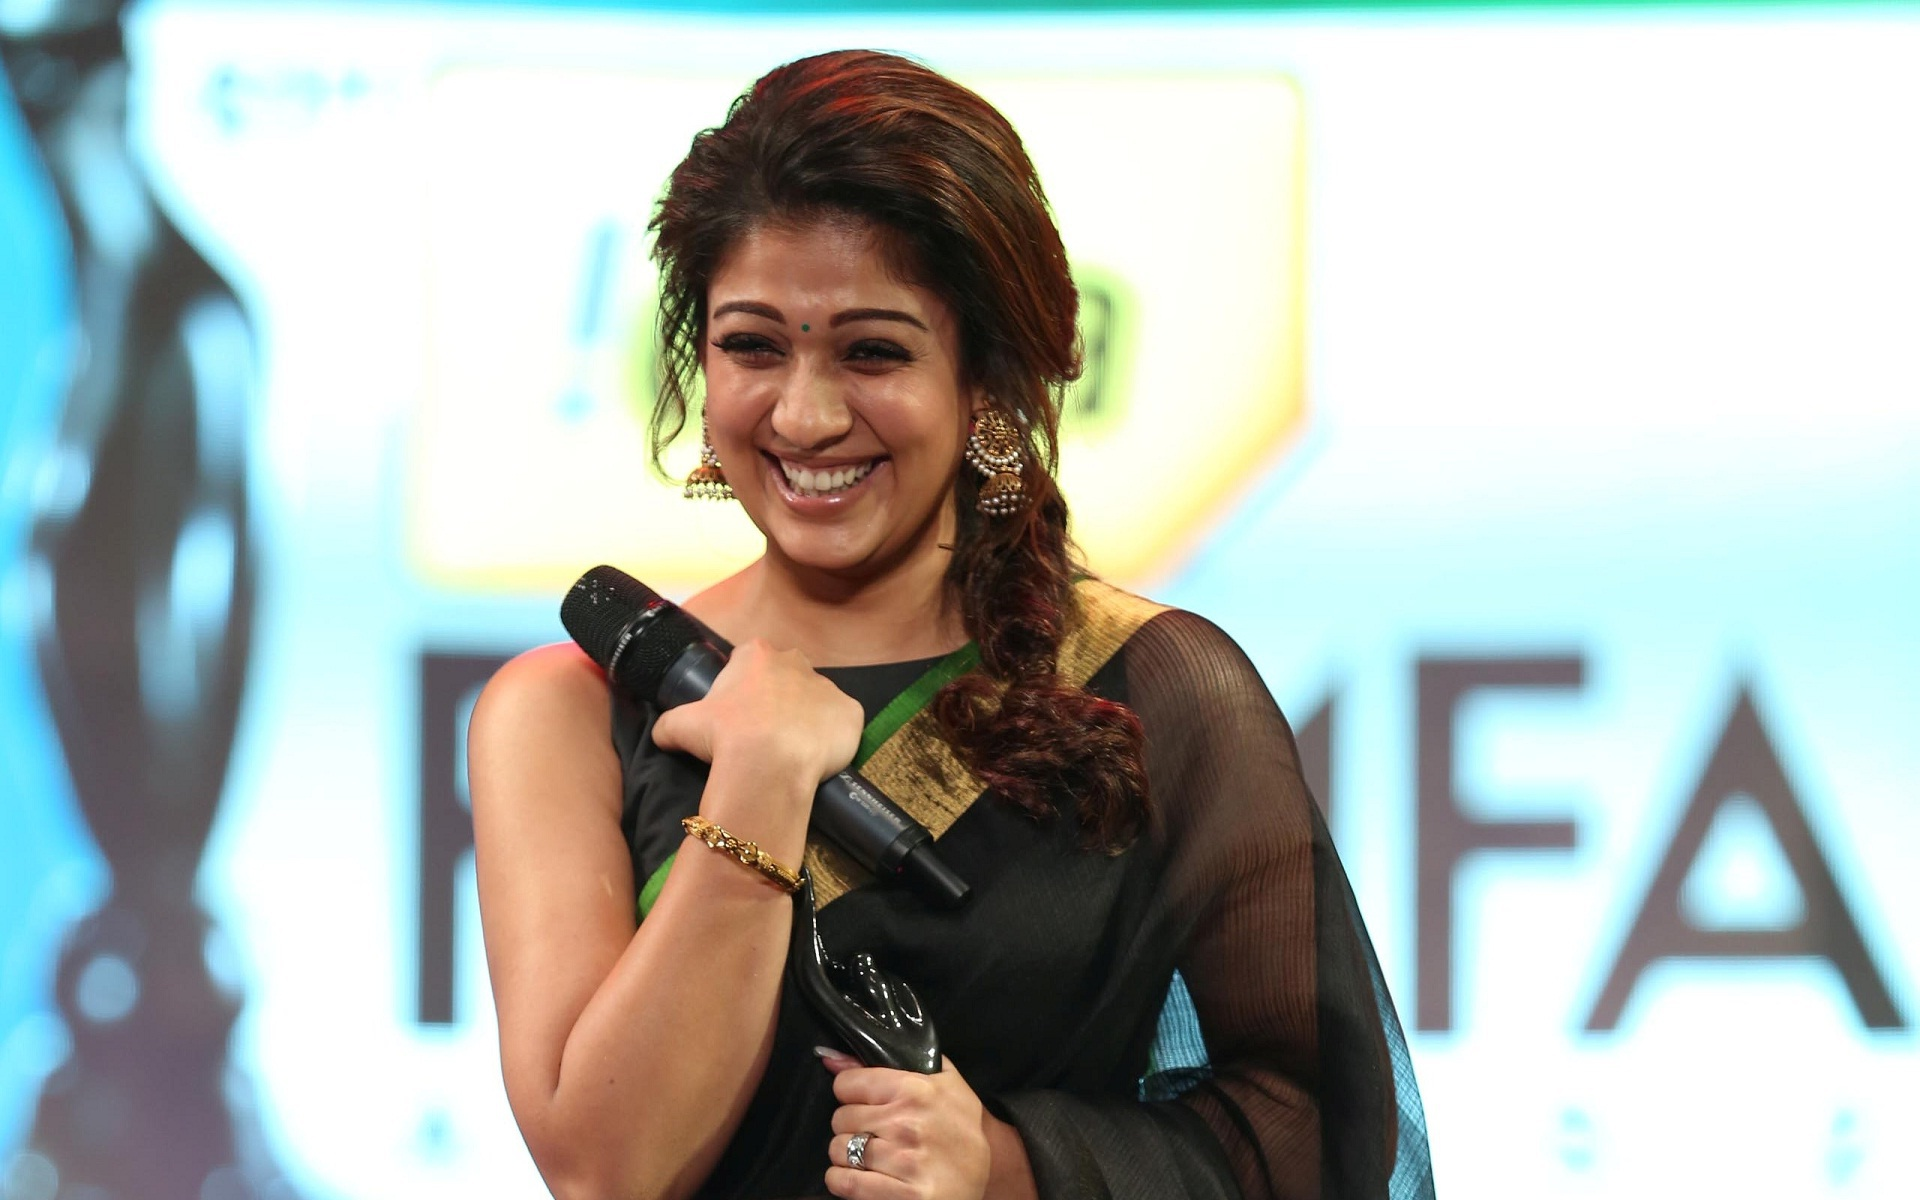 Nayanthara Hd Images 25 Cute Pictures: Nayanthara Wallpapers HD Free Download